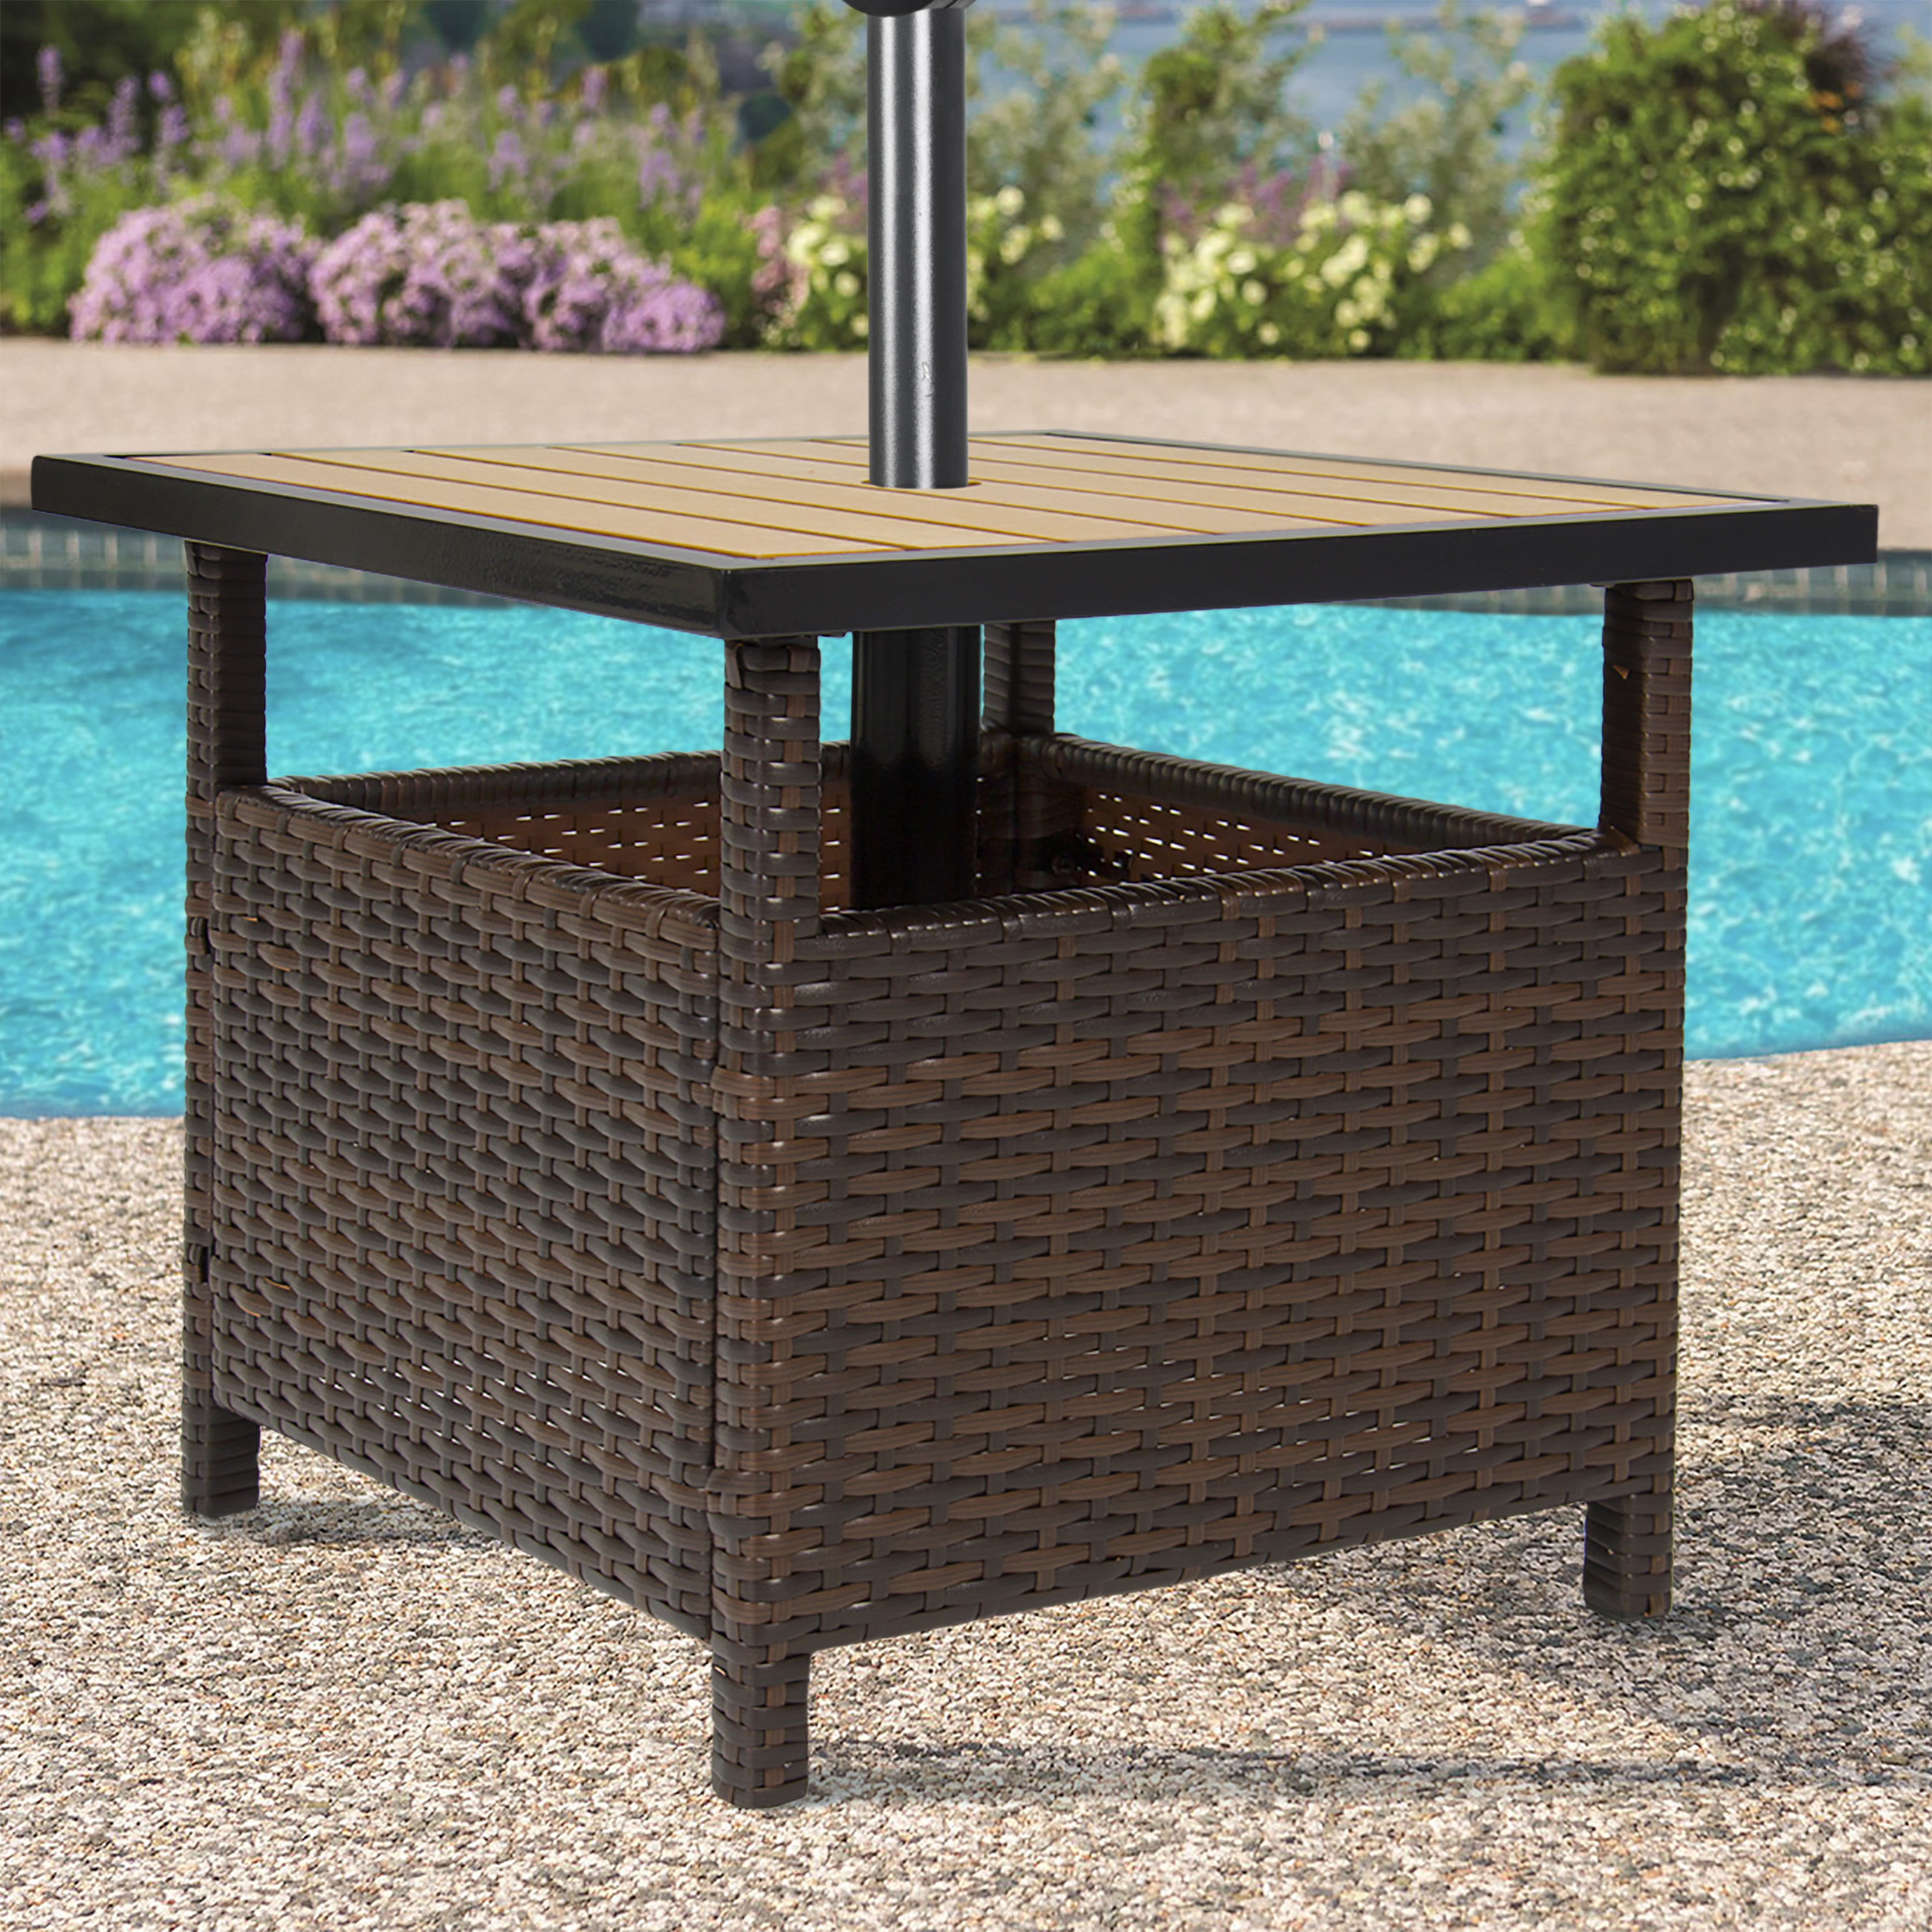 Best Choice Products Outdoor Furniture Wicker Rattan Patio Umbrella Stand  Table For Garden, Pool Deck